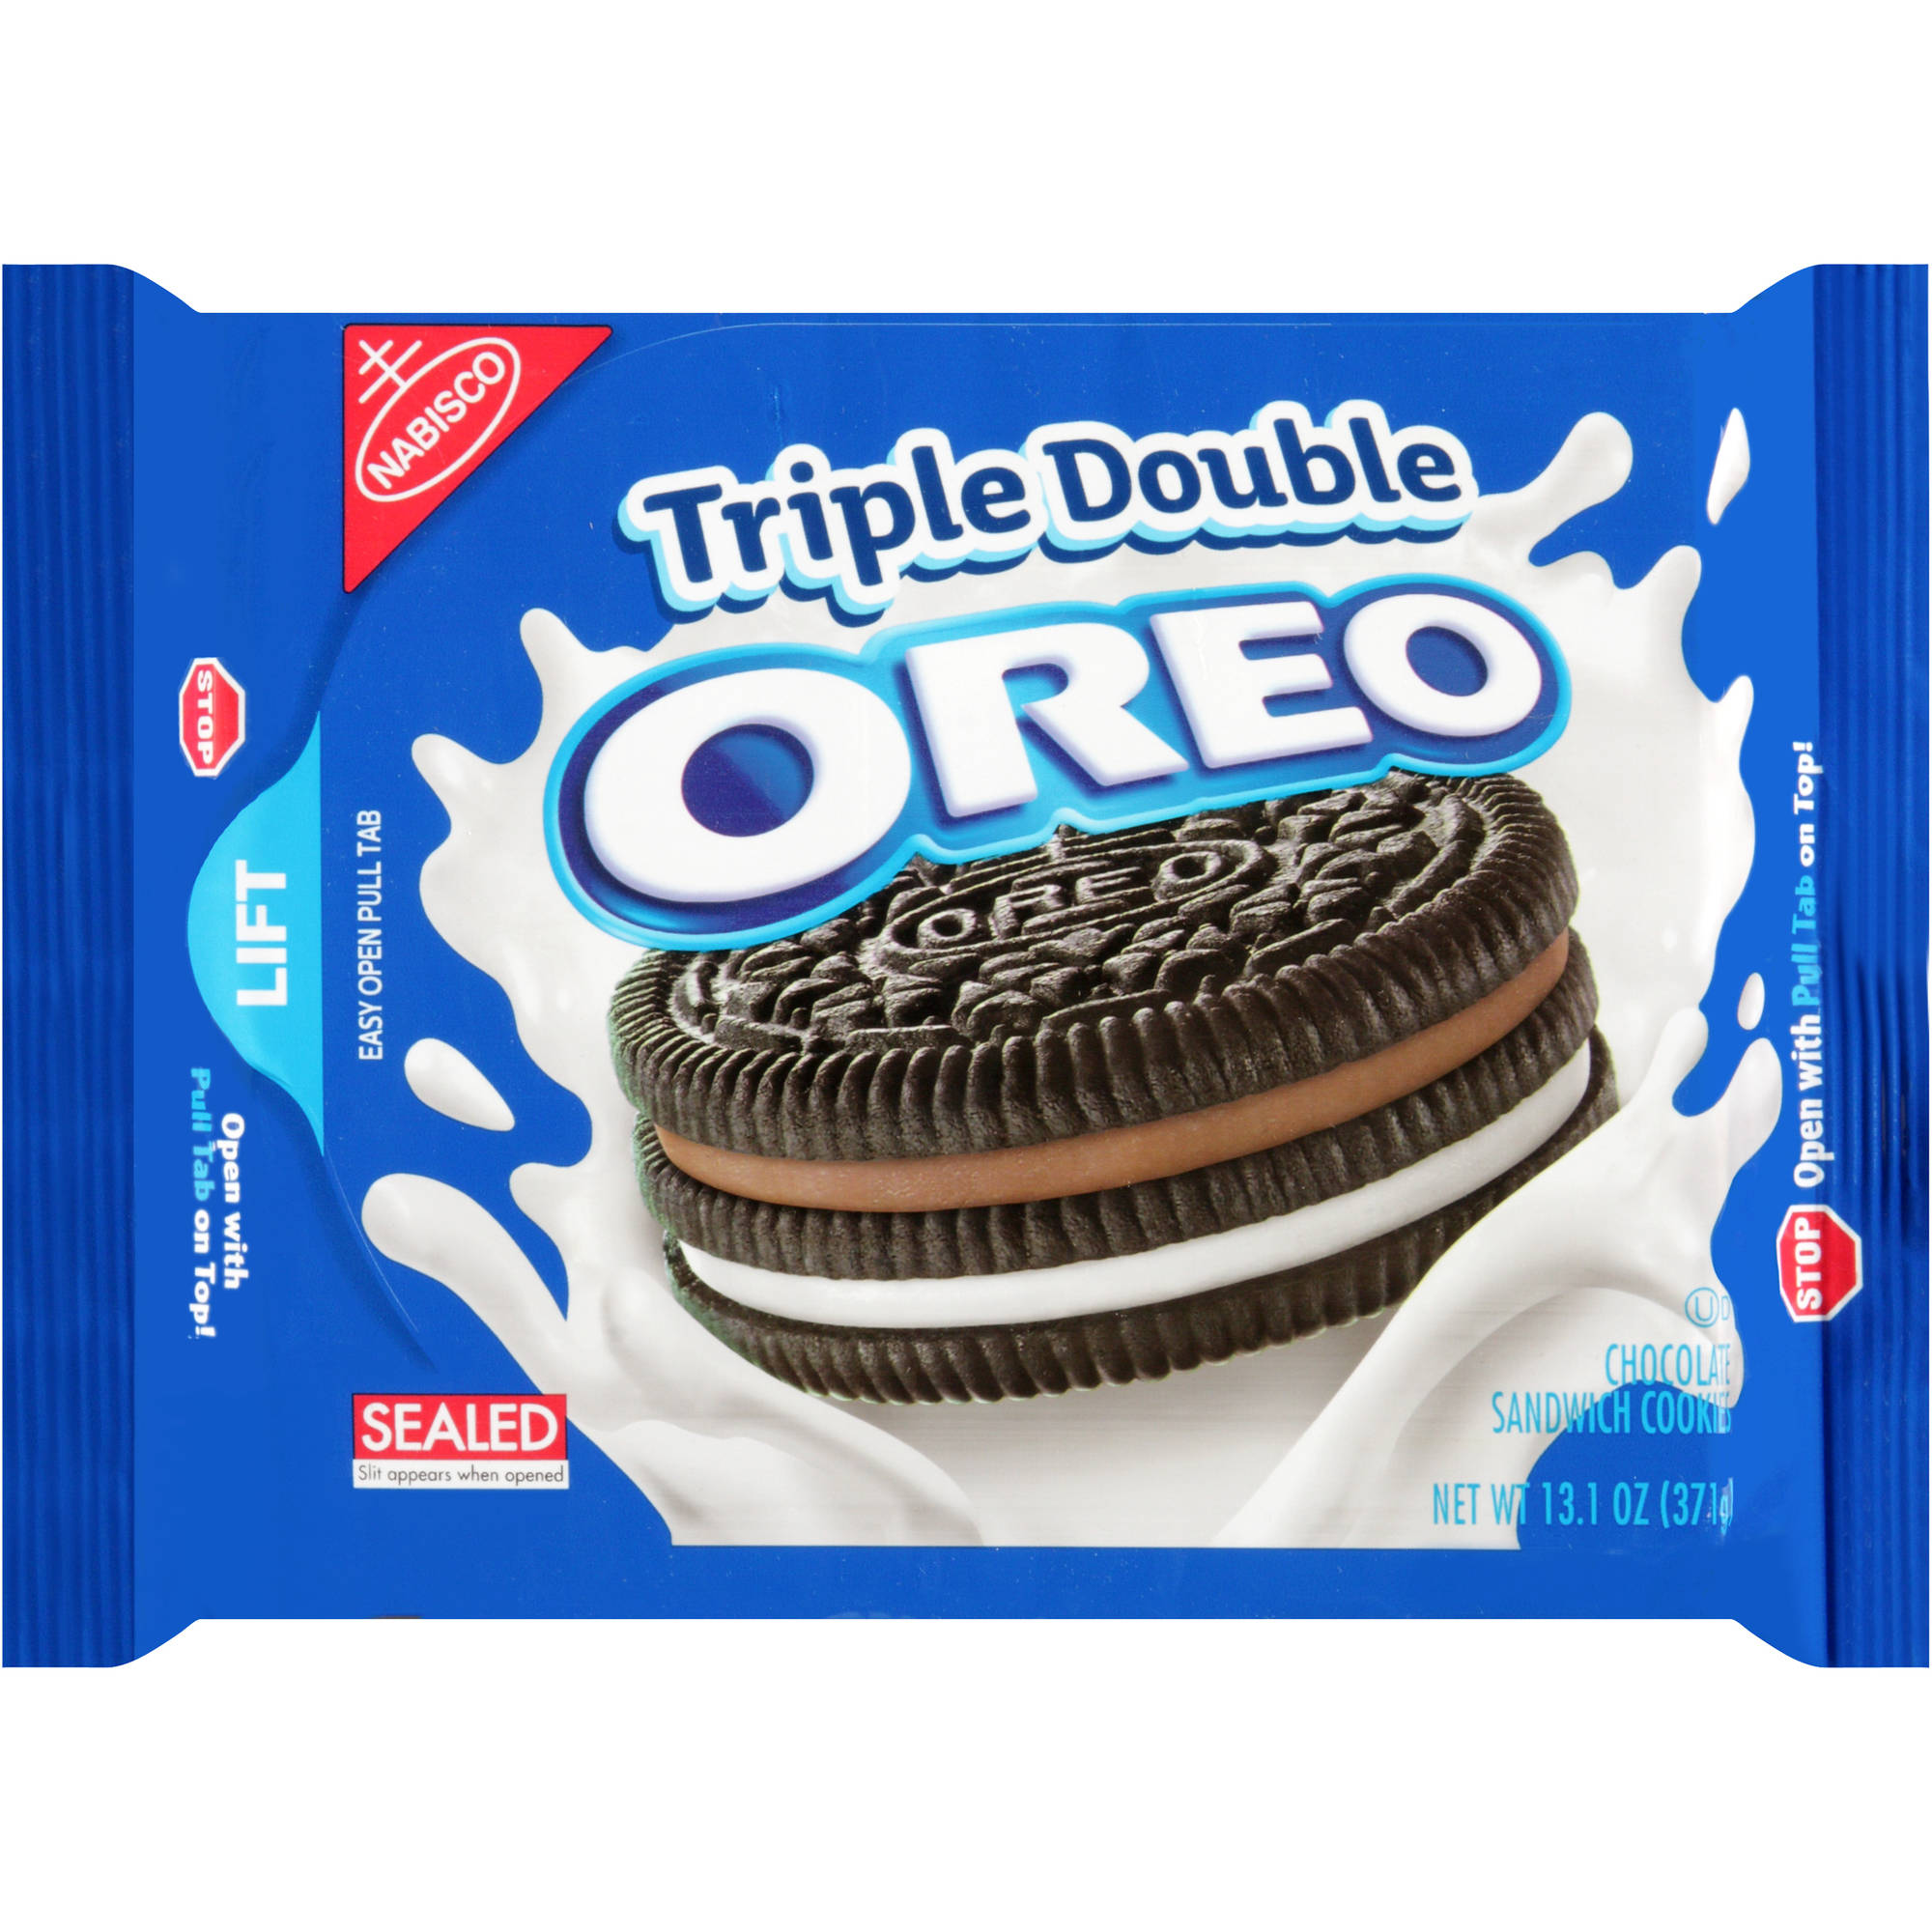 Nabisco Oreo Triple Double Chocolate Sandwich Cookies, 13.1 oz